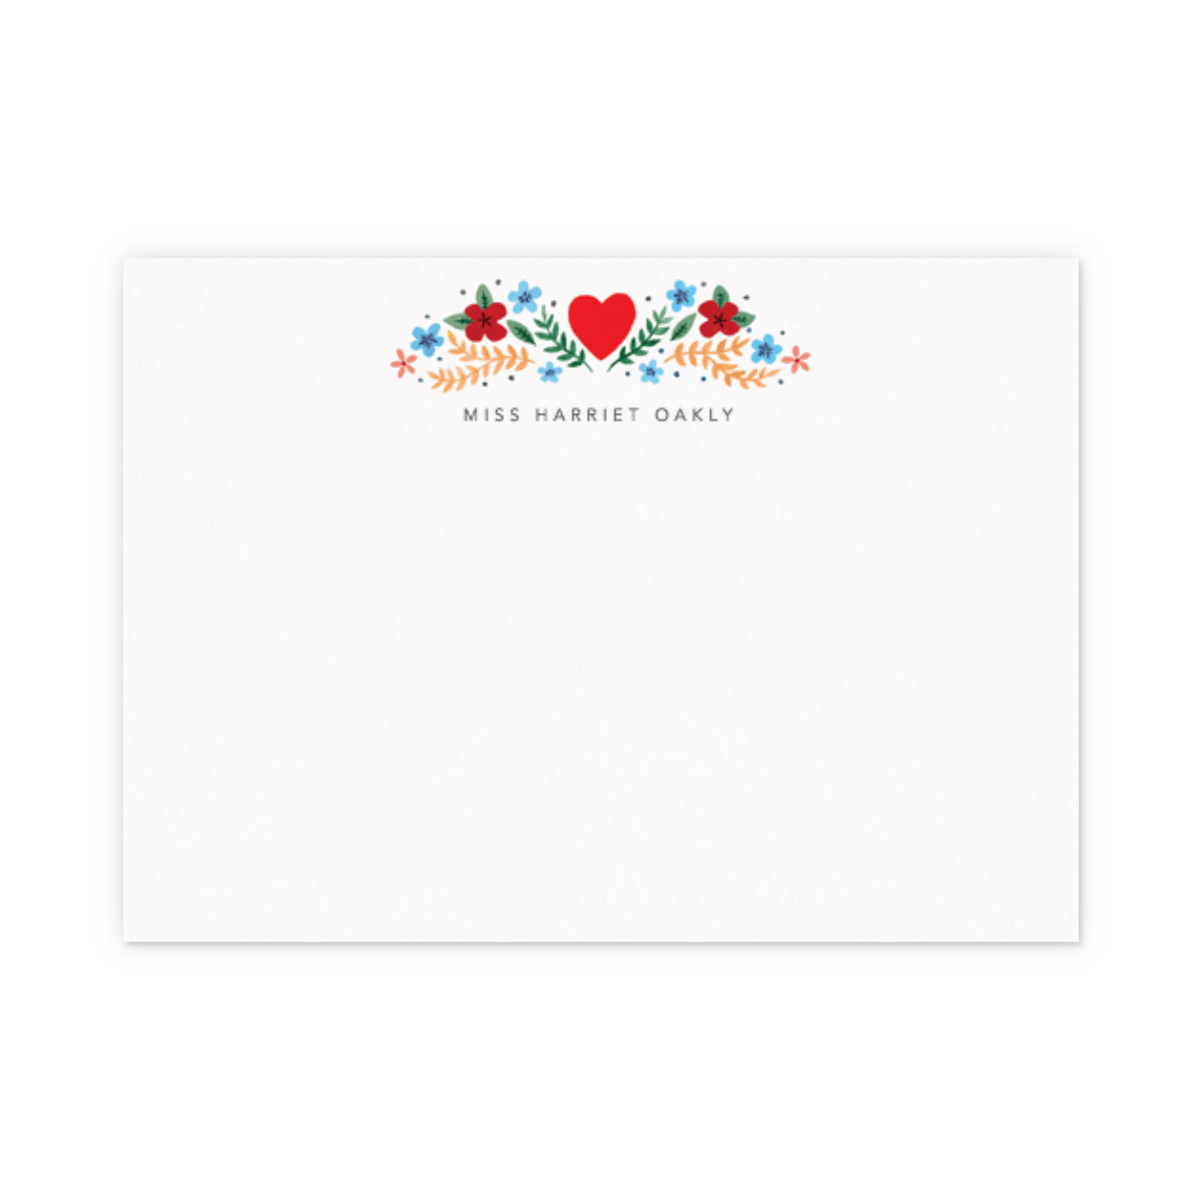 Https%3a%2f%2fwww.papier.com%2fproduct image%2f7881%2f10%2ffolk heart floral 1944 avant 1551217260.png?ixlib=rb 1.1